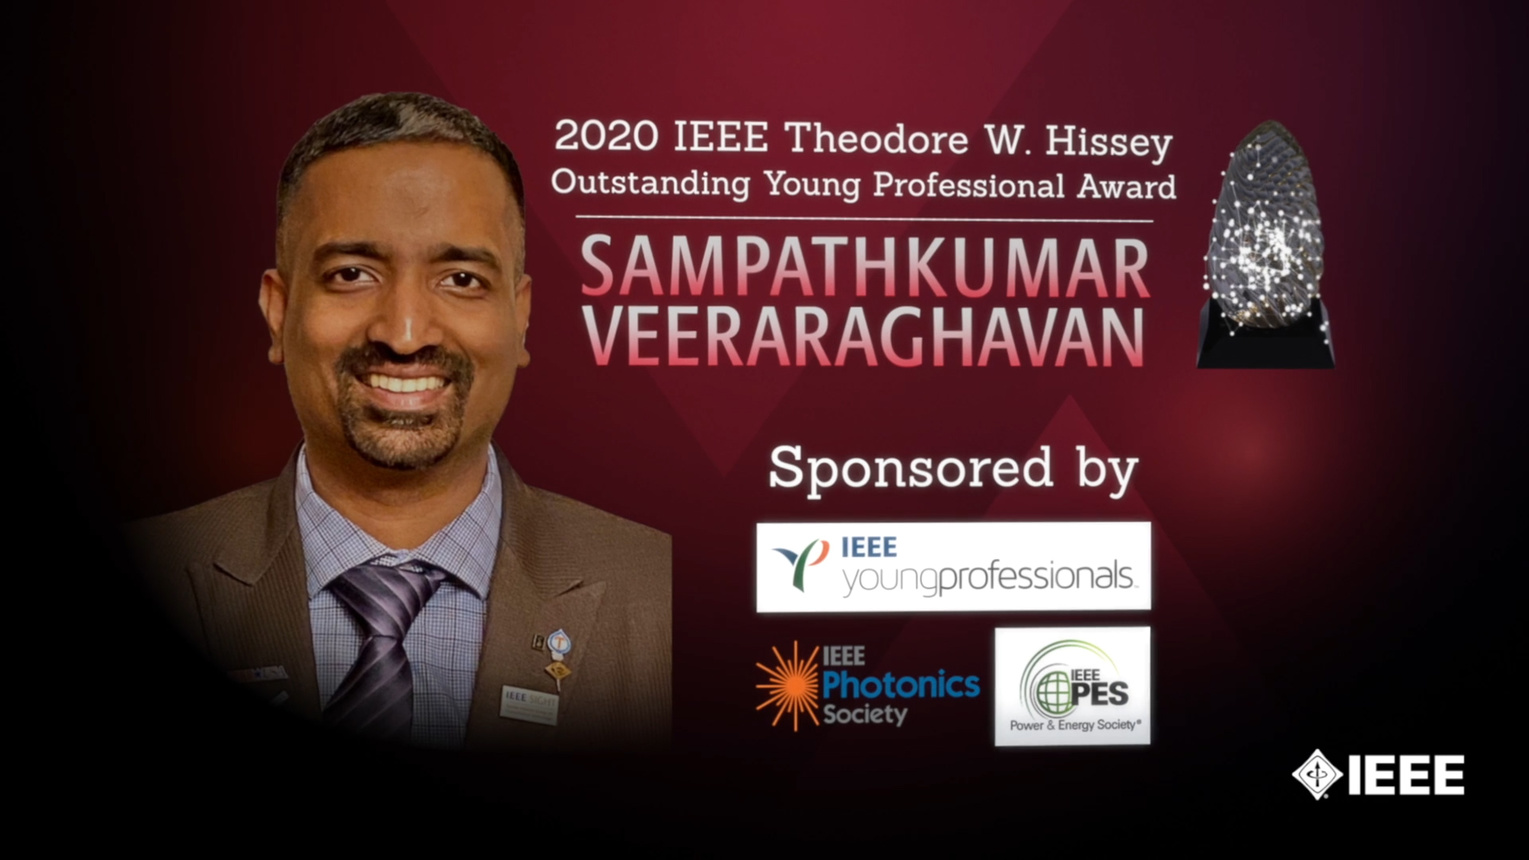 Honors 2020: Sampathkumar Veeraraghavan Wins the IEEE Theodore W. Hissey Outstanding Young Professional Award